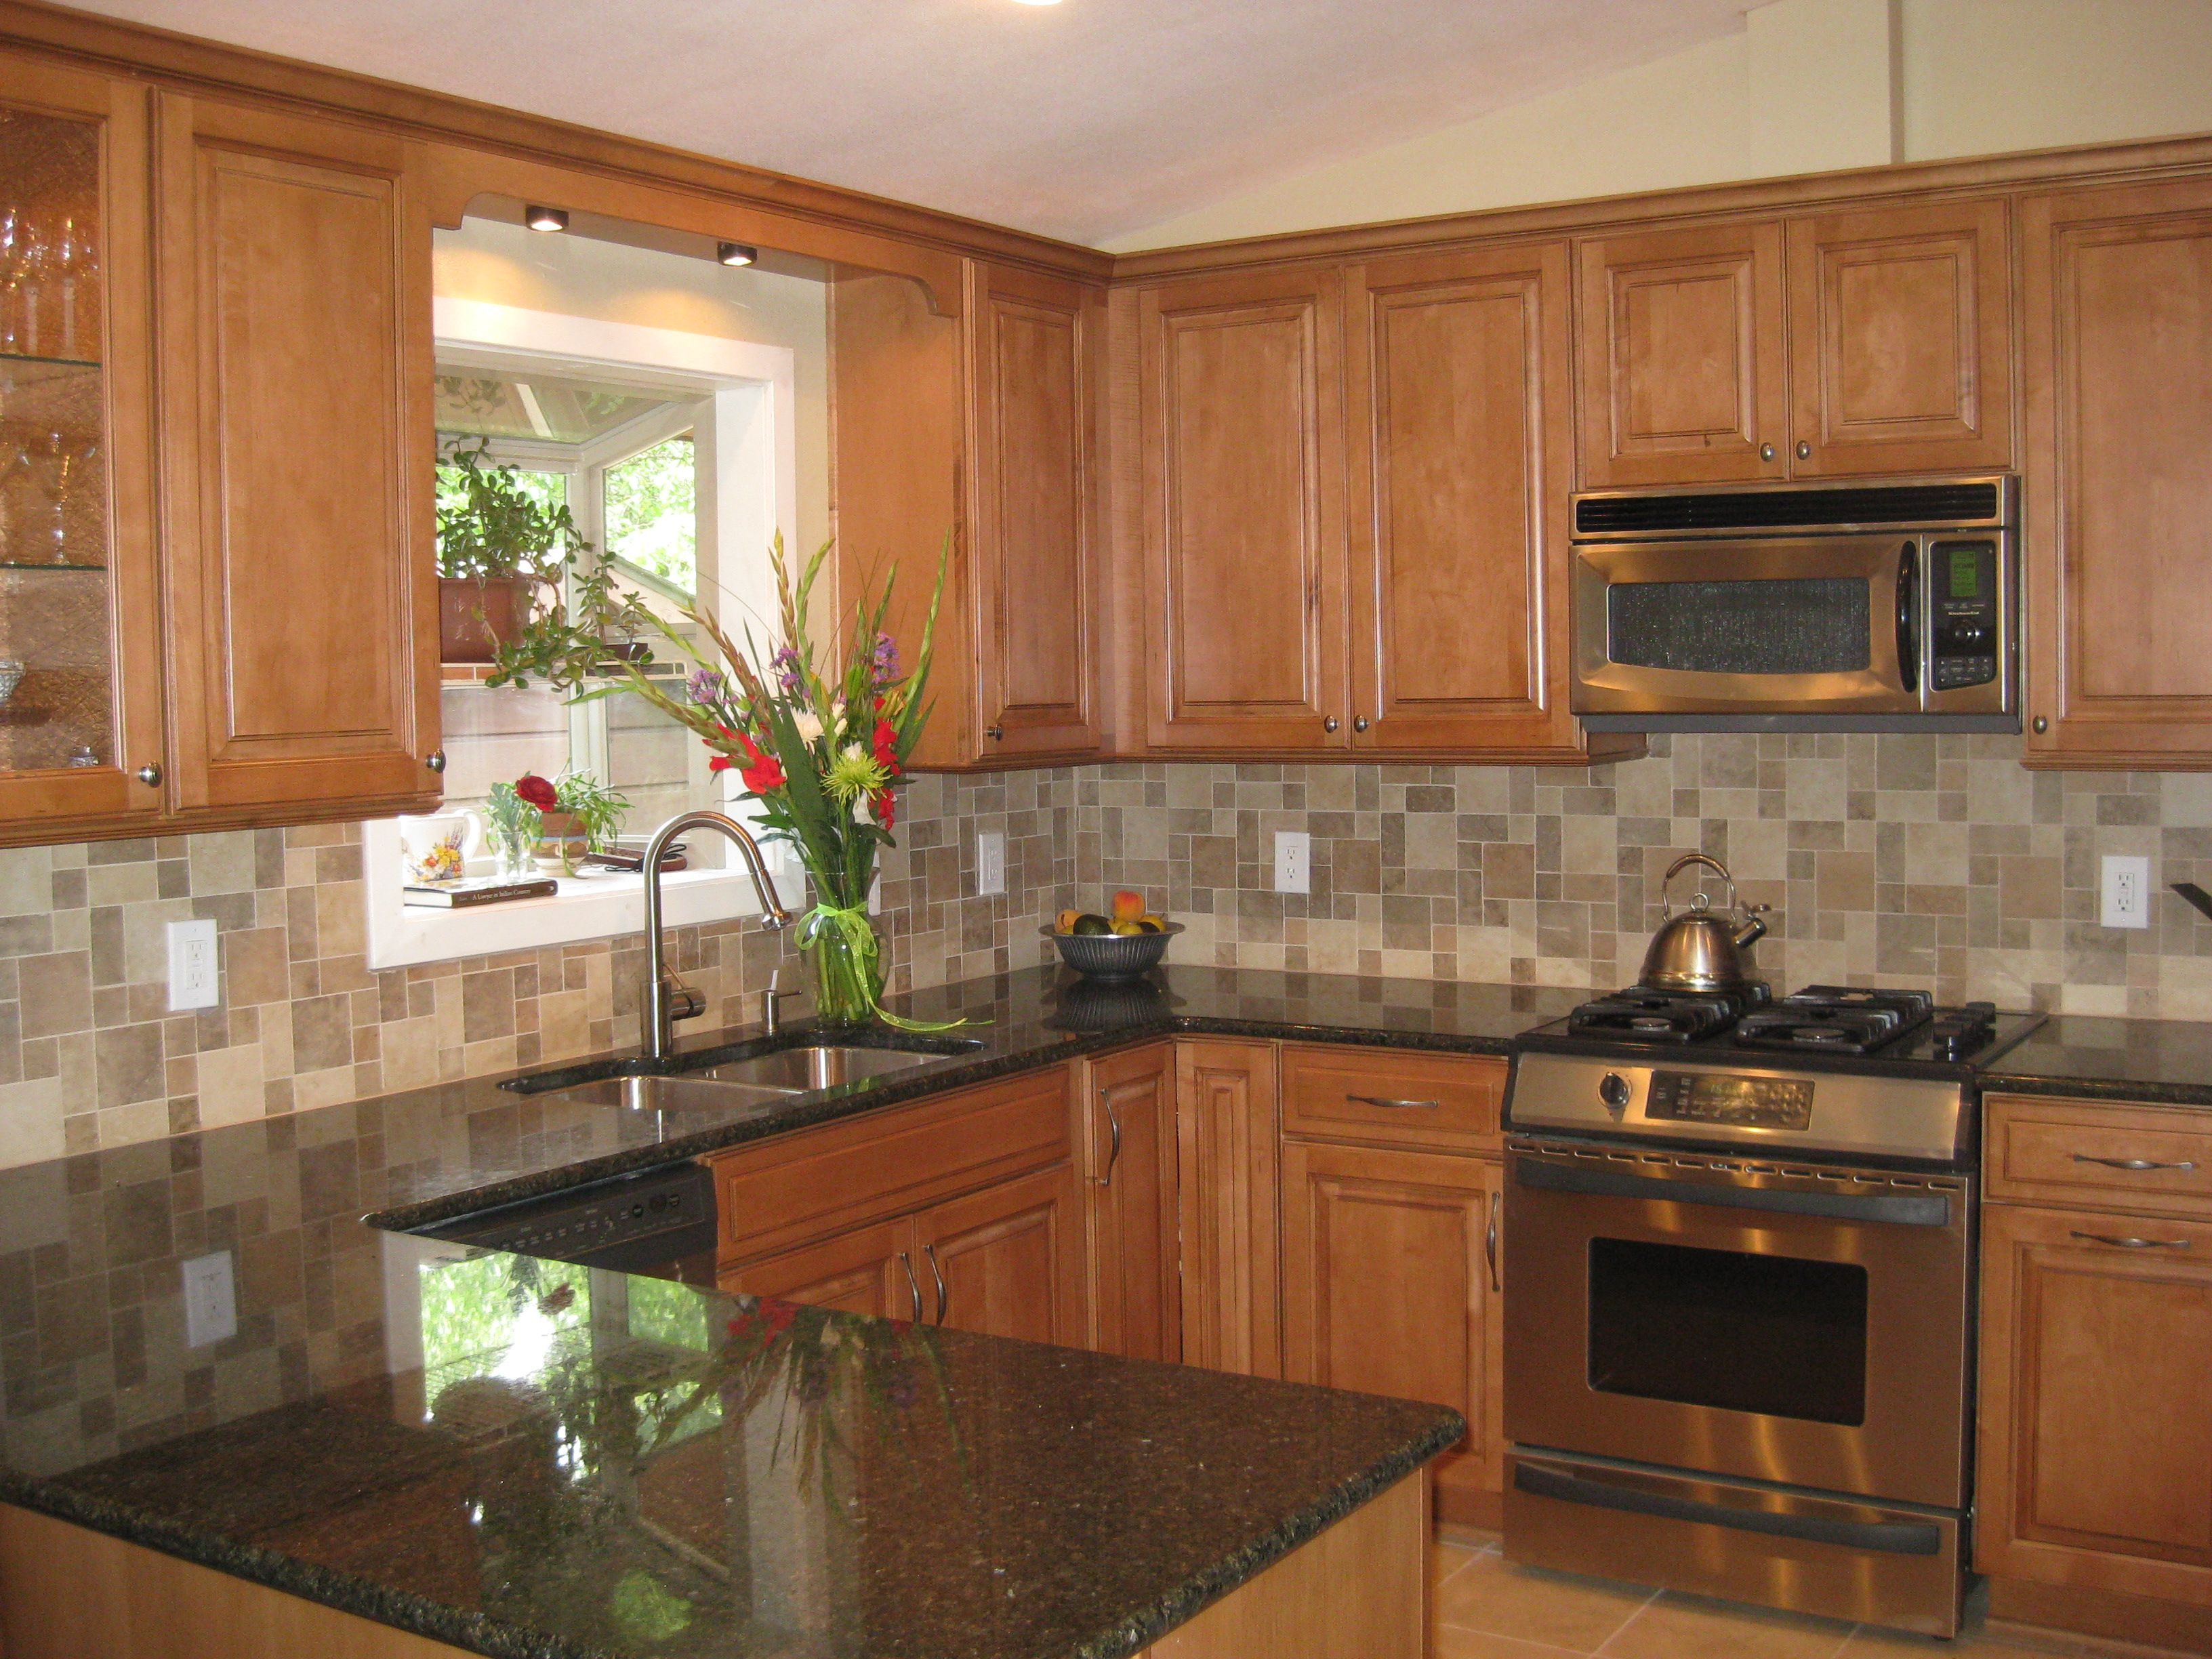 Light Maple Kitchen Cabinets with Granite Countertops ... on Light Maple Cabinets With White Countertops  id=69905